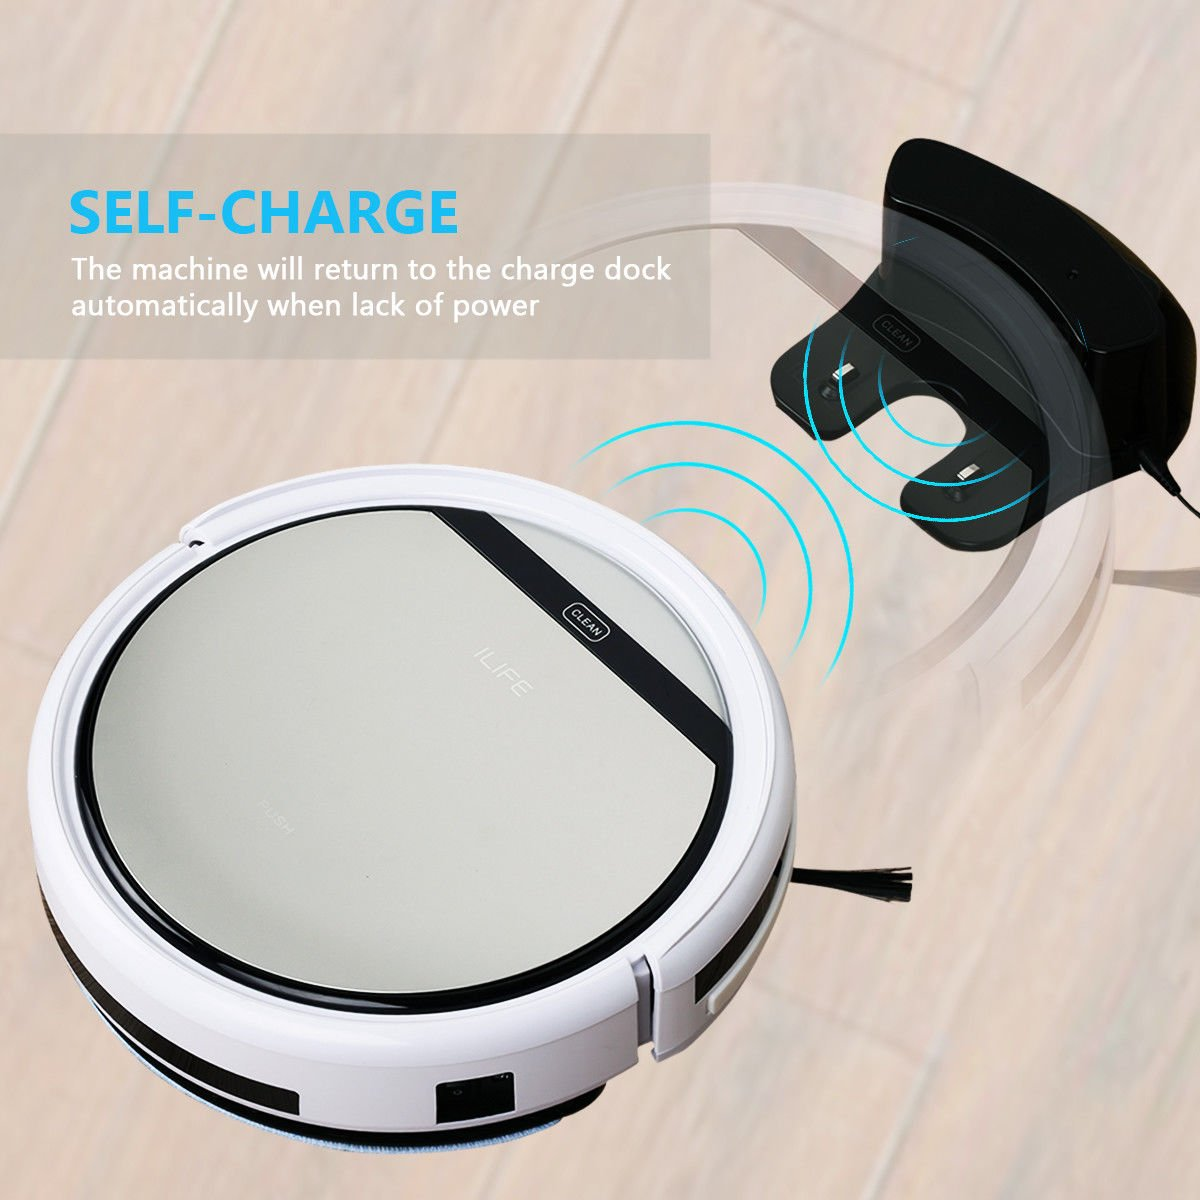 Cleaner Smart Robot Vacuum Cleaning Floor Auto Dust Microfiber Robotic Sweeper Mop Automatic by Alek...Shop (Image #2)